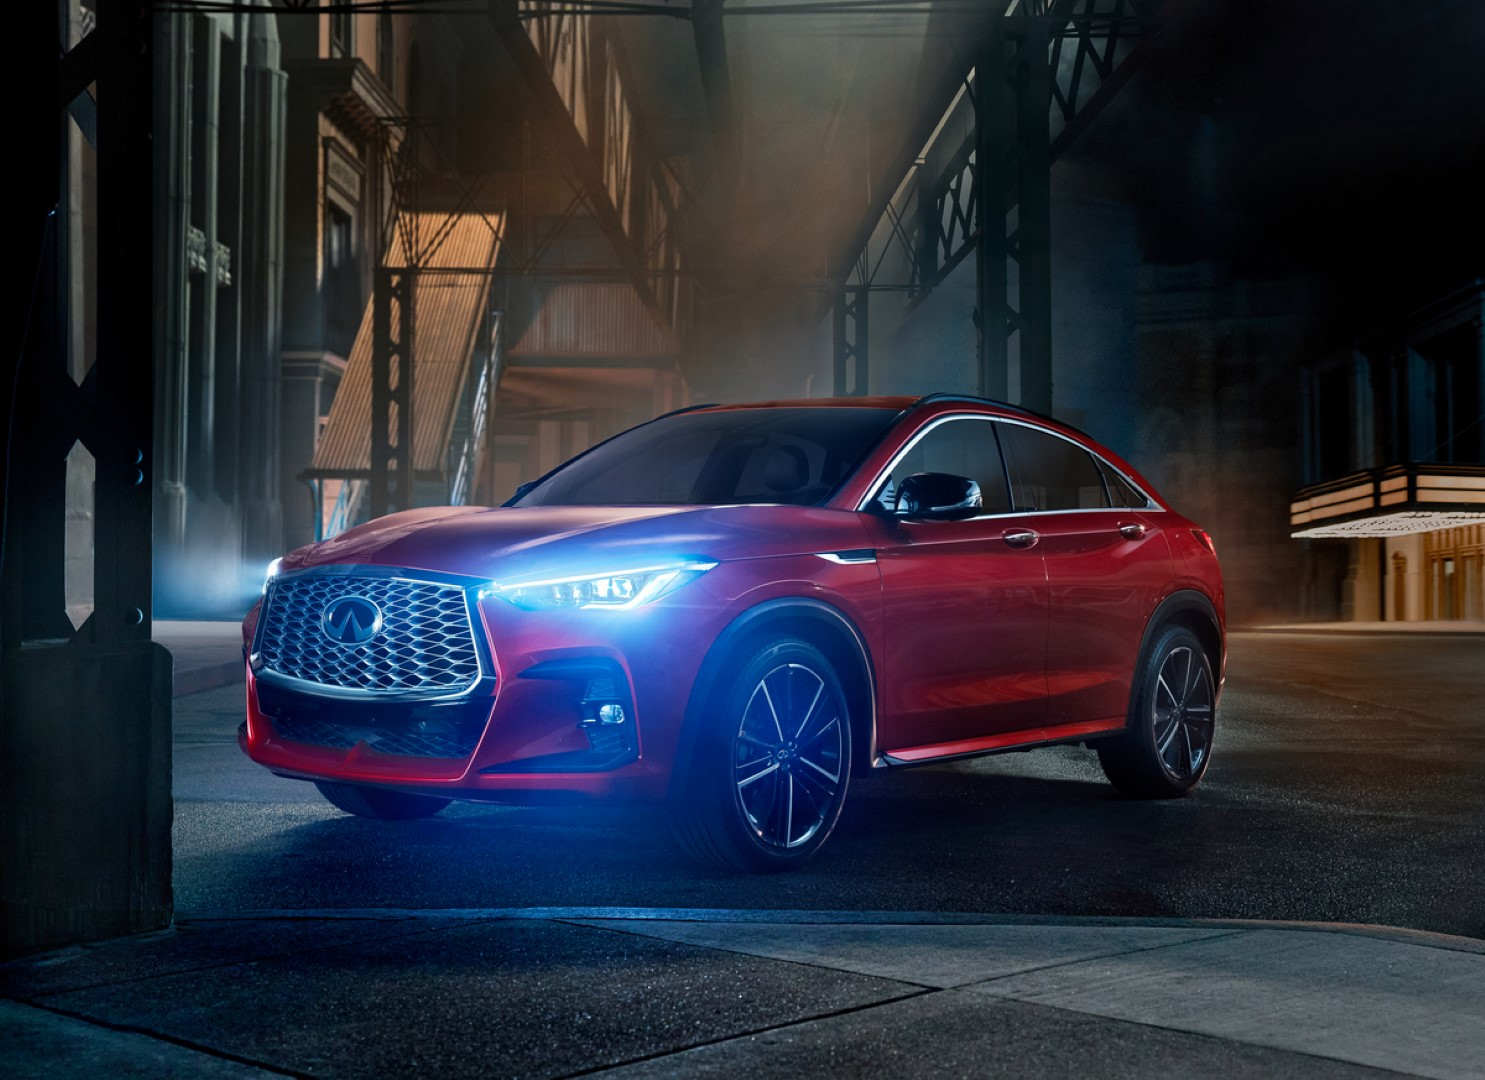 2020 infiniti QX55 night